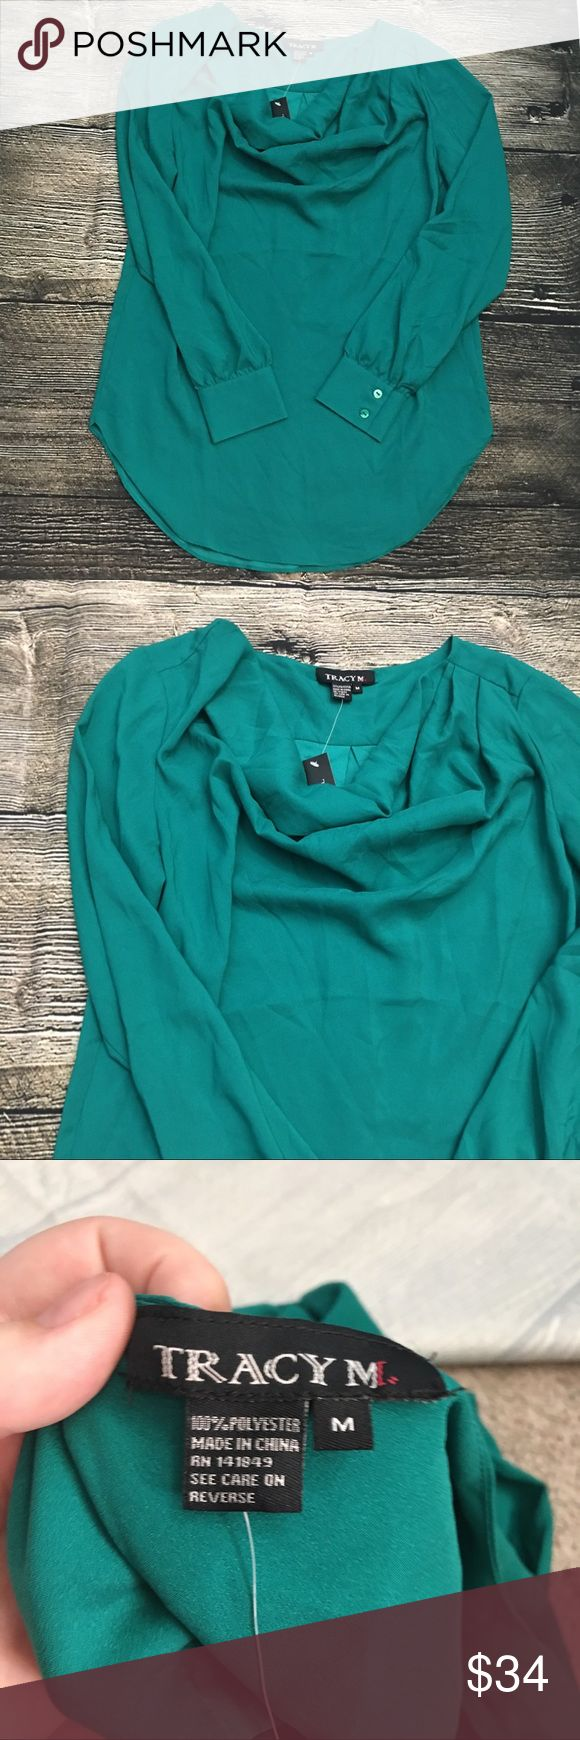 "Tracy M Blouse New with tags. Tracy M Blouse with a slouchy neck area and nice sleeves with buttons. Style number 228. The color looks to be a teal color but more green than blue (cyan maybe?). The shirt measures about 20"" from armpit to armpit laying flat and about 29"" long laying flat.  Pet Friendly Home, Smoke Free Home , No trades. Offers, Bundles, and Questions Encouraged Tracy M Tops Blouses"